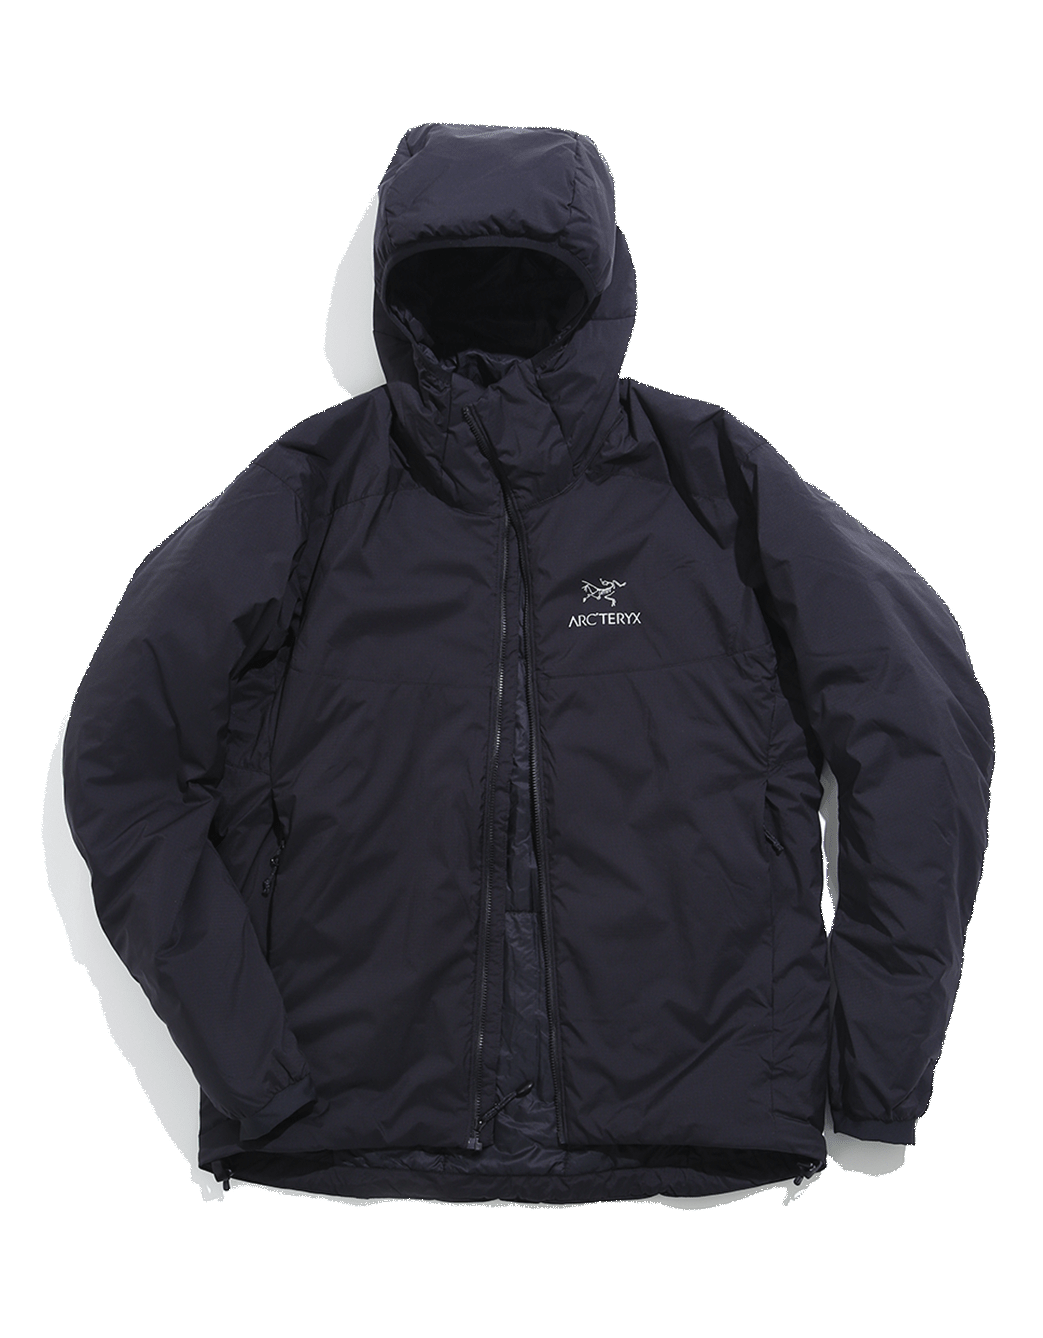 ARC'TERYX Atom AR Hoody Men's (REGULAR FIT)